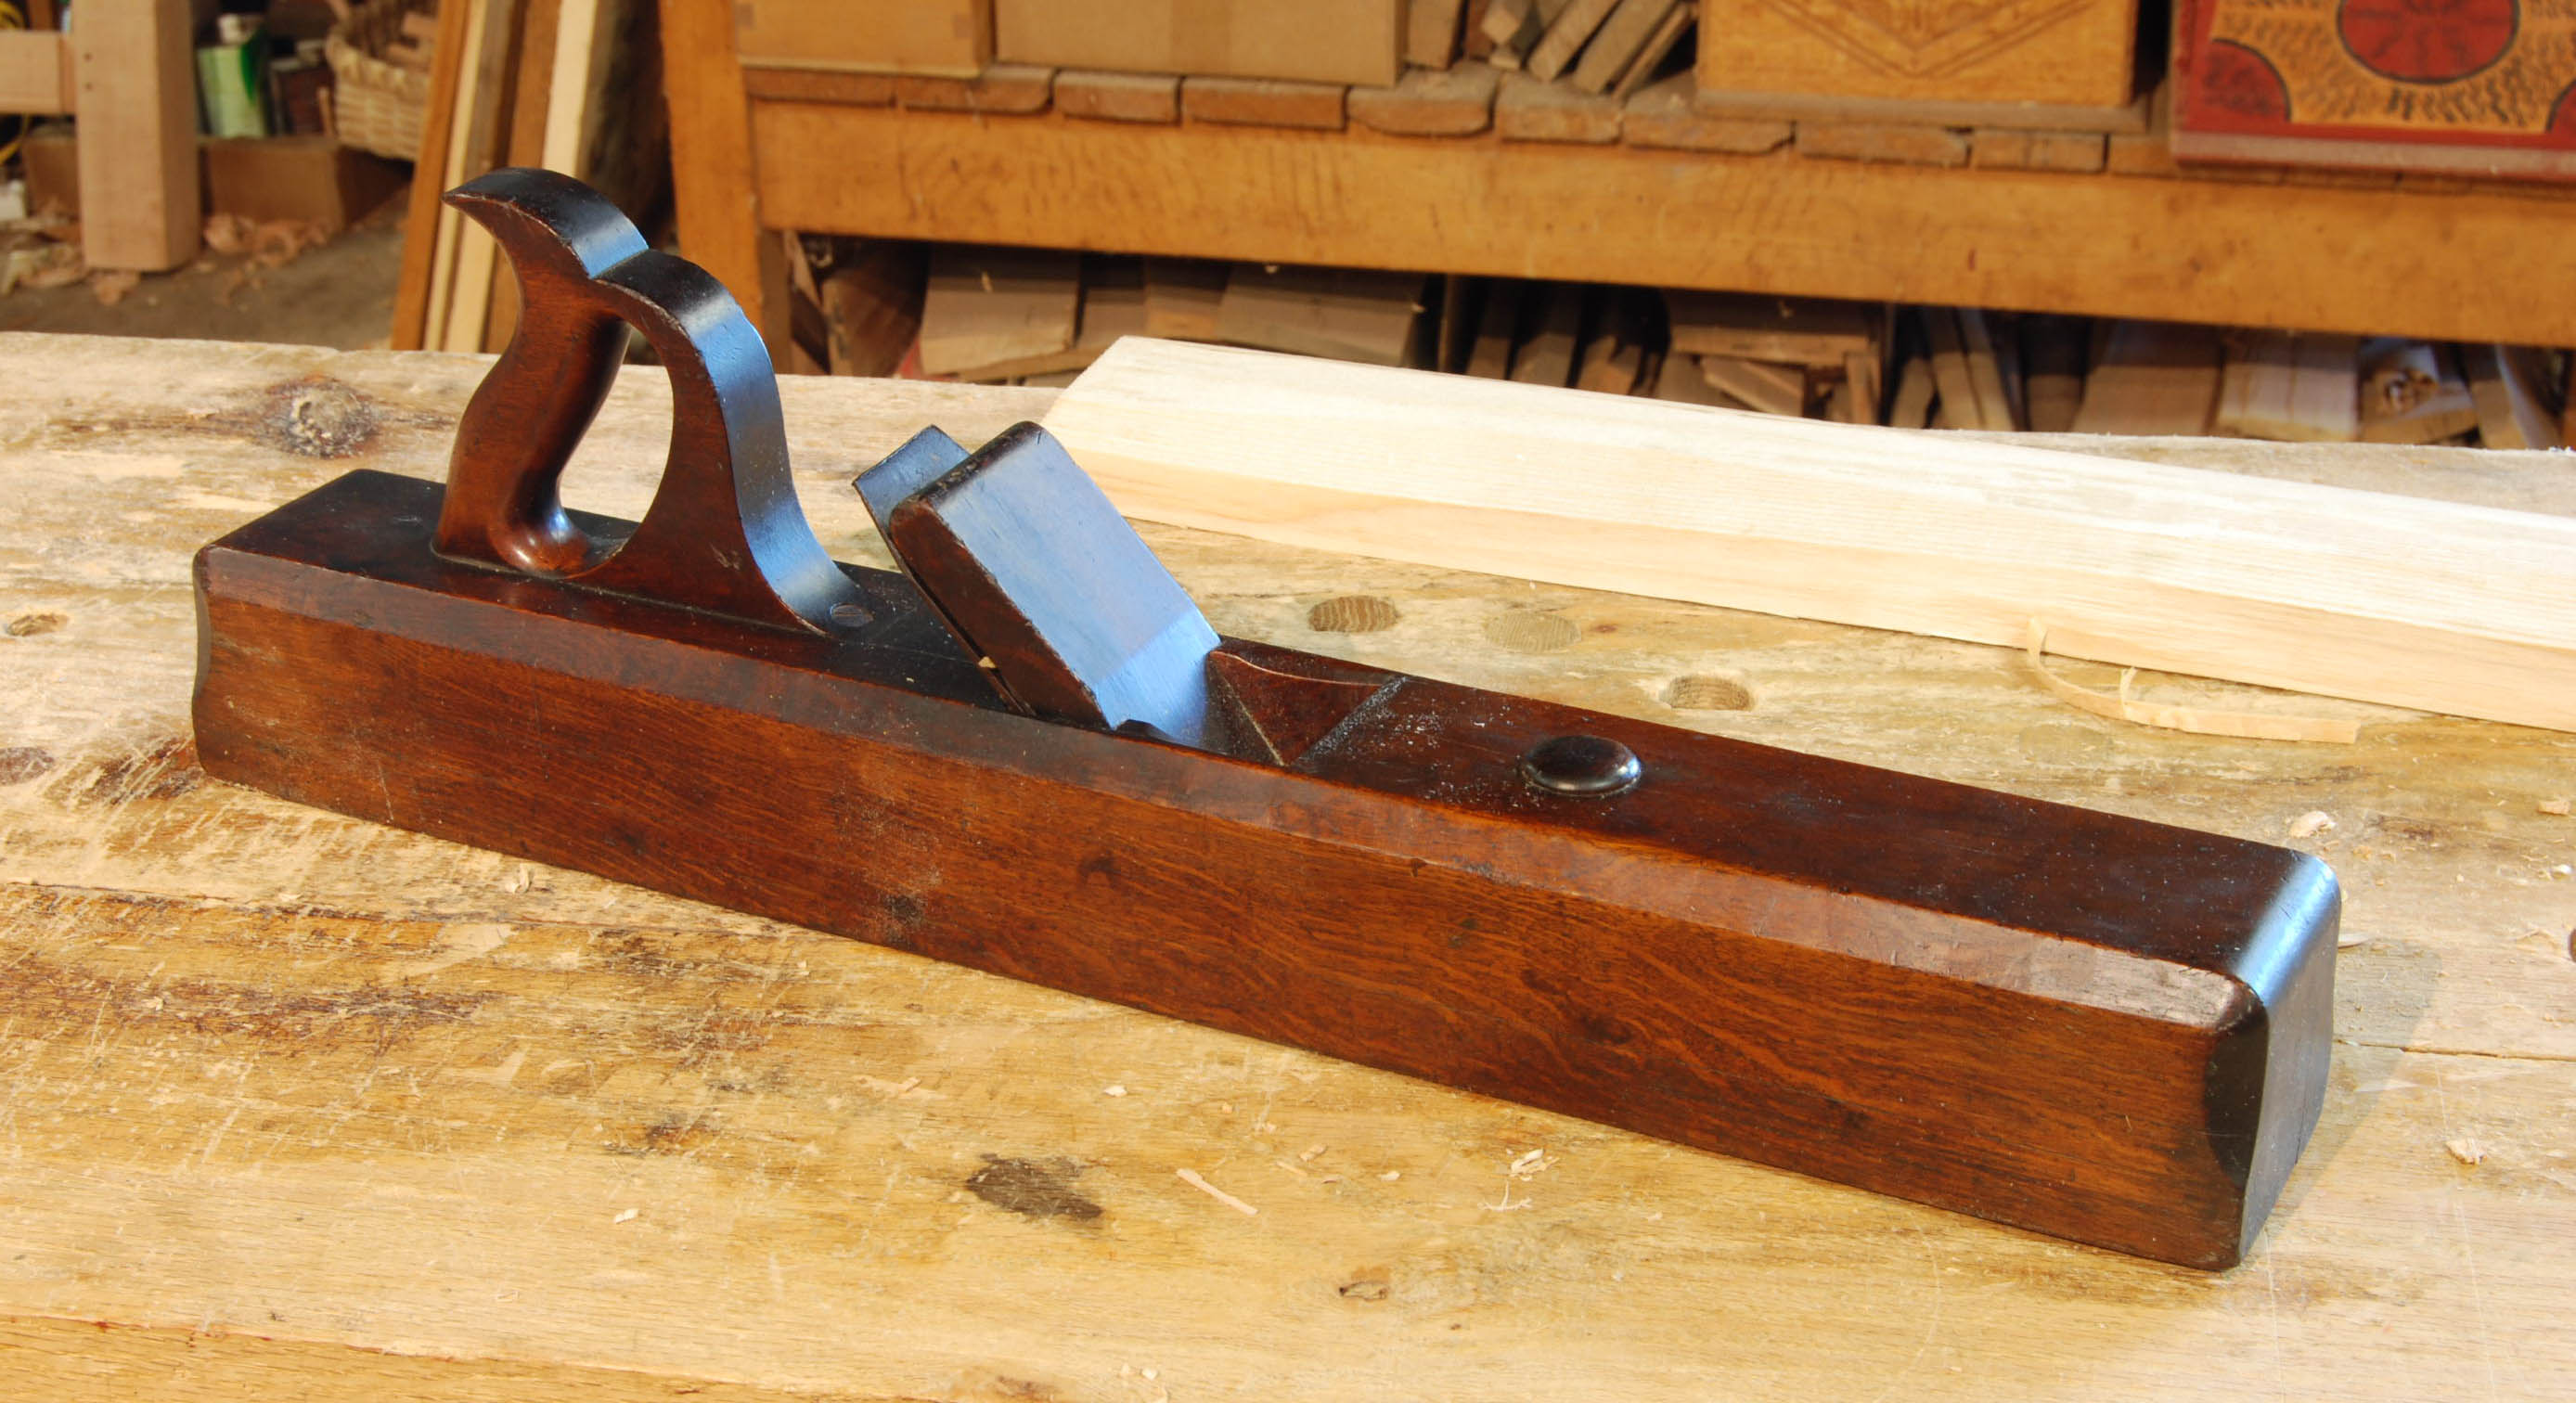 Wood Jointer Plane Plans Free Download | cowardly33pwx